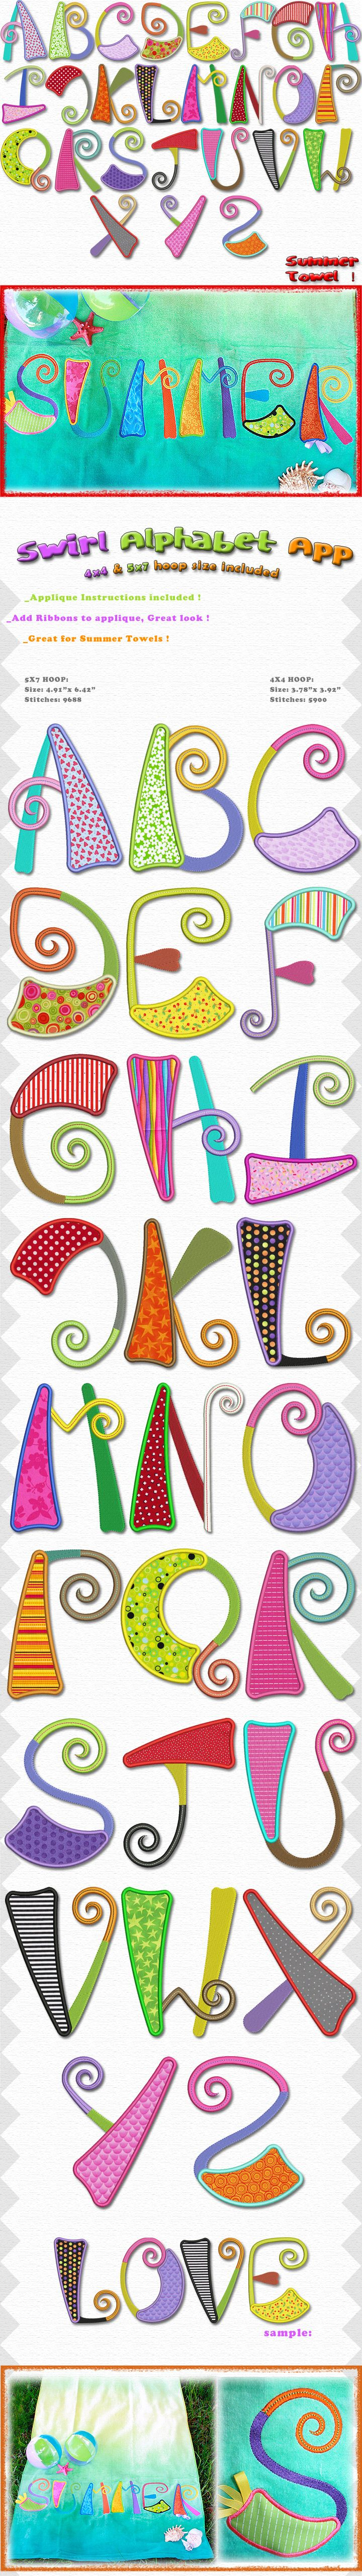 SWIRL ALPHABET, Embroidery Designs Free Embroidery Design Patterns Applique